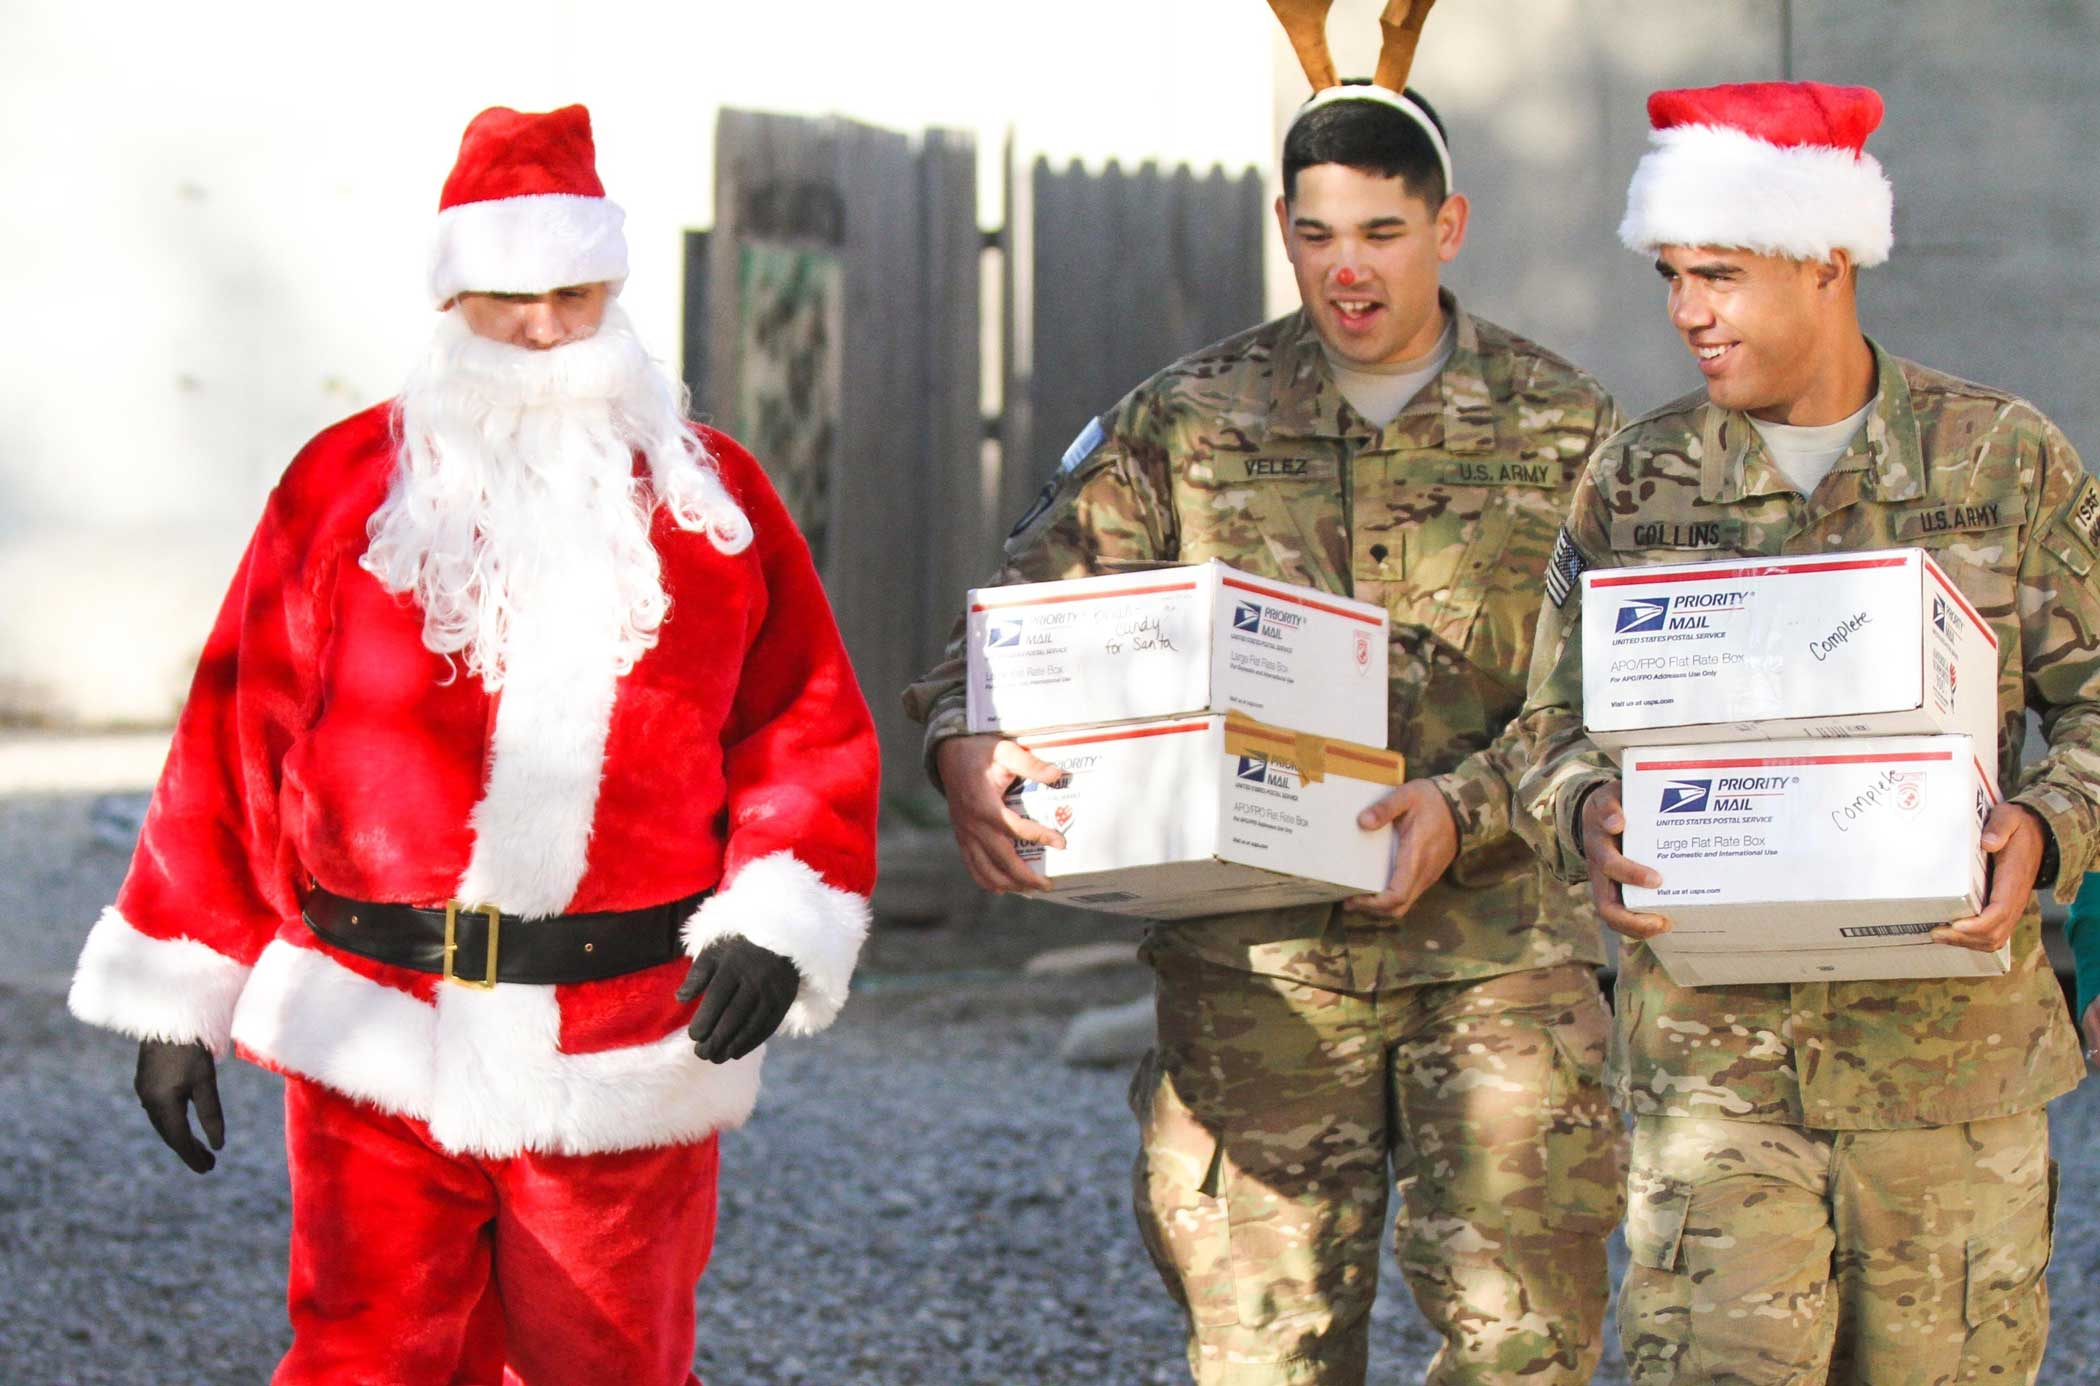 """Chief Warrant Officer 2 Brian Boase, an intelligence chief, Headquarters, Headquarters Company, 3rd Brigade Combat Team """"Rakkasans,"""" 101st Airborne Division (Air Assault), walks with two soldiers dressed as """"Santa's Helpers"""" while they deliver care packages at Forward Operating Base Salerno, Afghanistan, Dec. 25, 2012. Photo by Spc. Brian Smith-Dutton, courtesy of U.S. Army."""